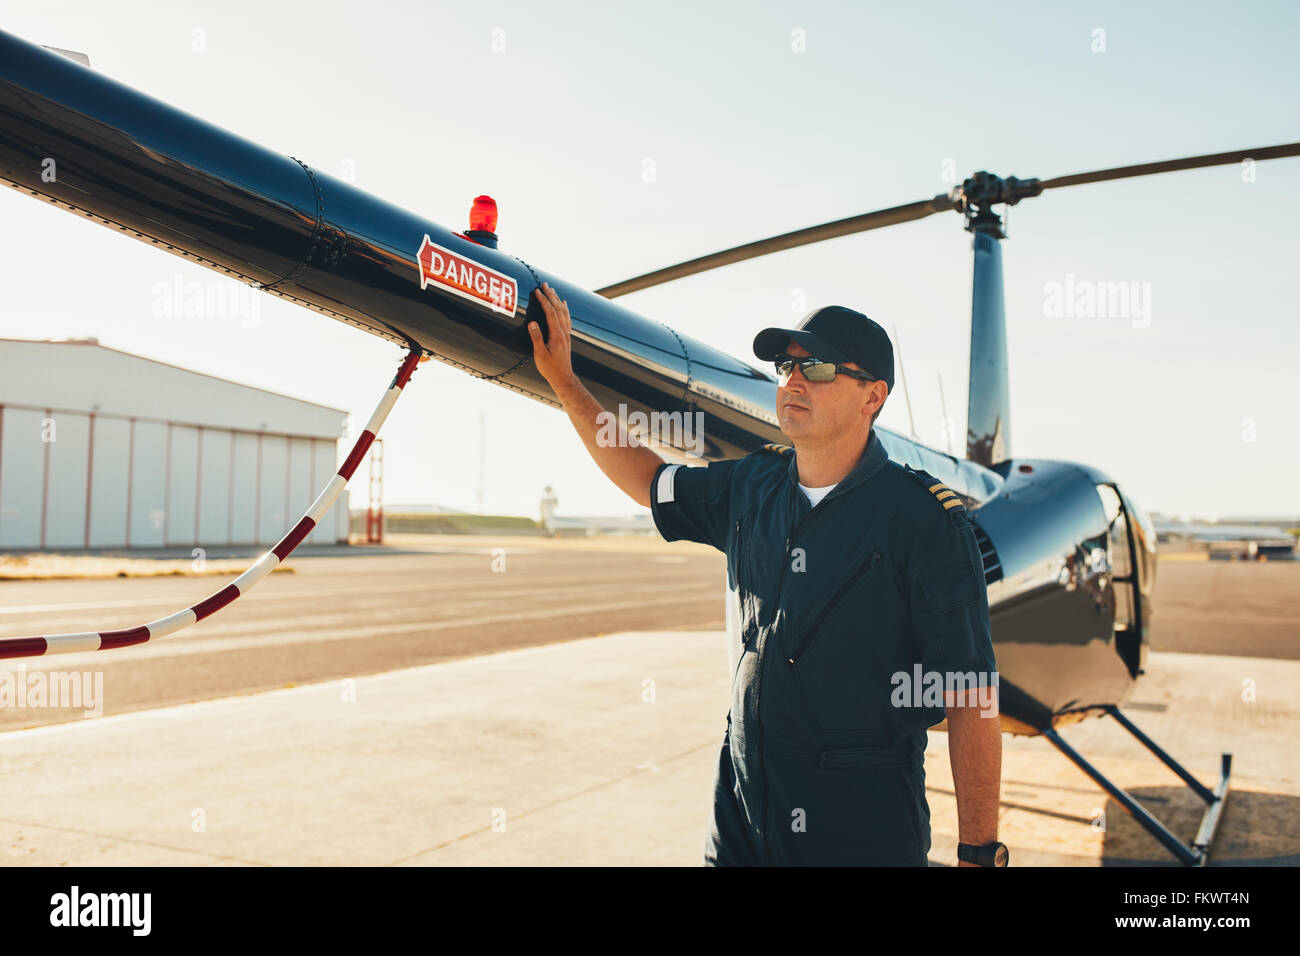 Male pilot standing at the tail of a helicopter and looking away. Mechanic inspecting helicopter before take off. - Stock Image